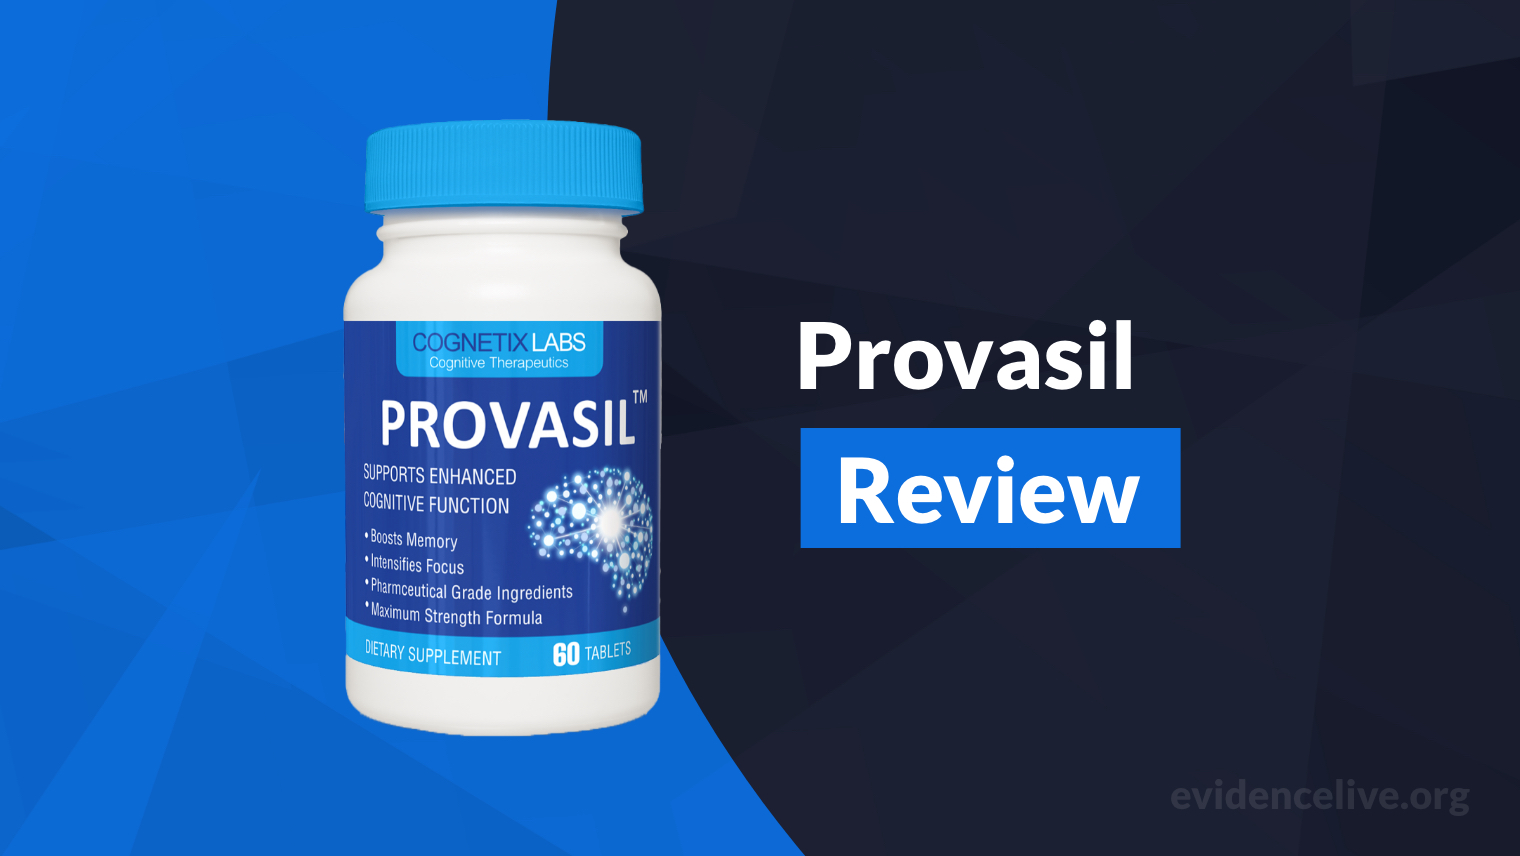 Provasil Review: Is This Supplement Worth The Money?